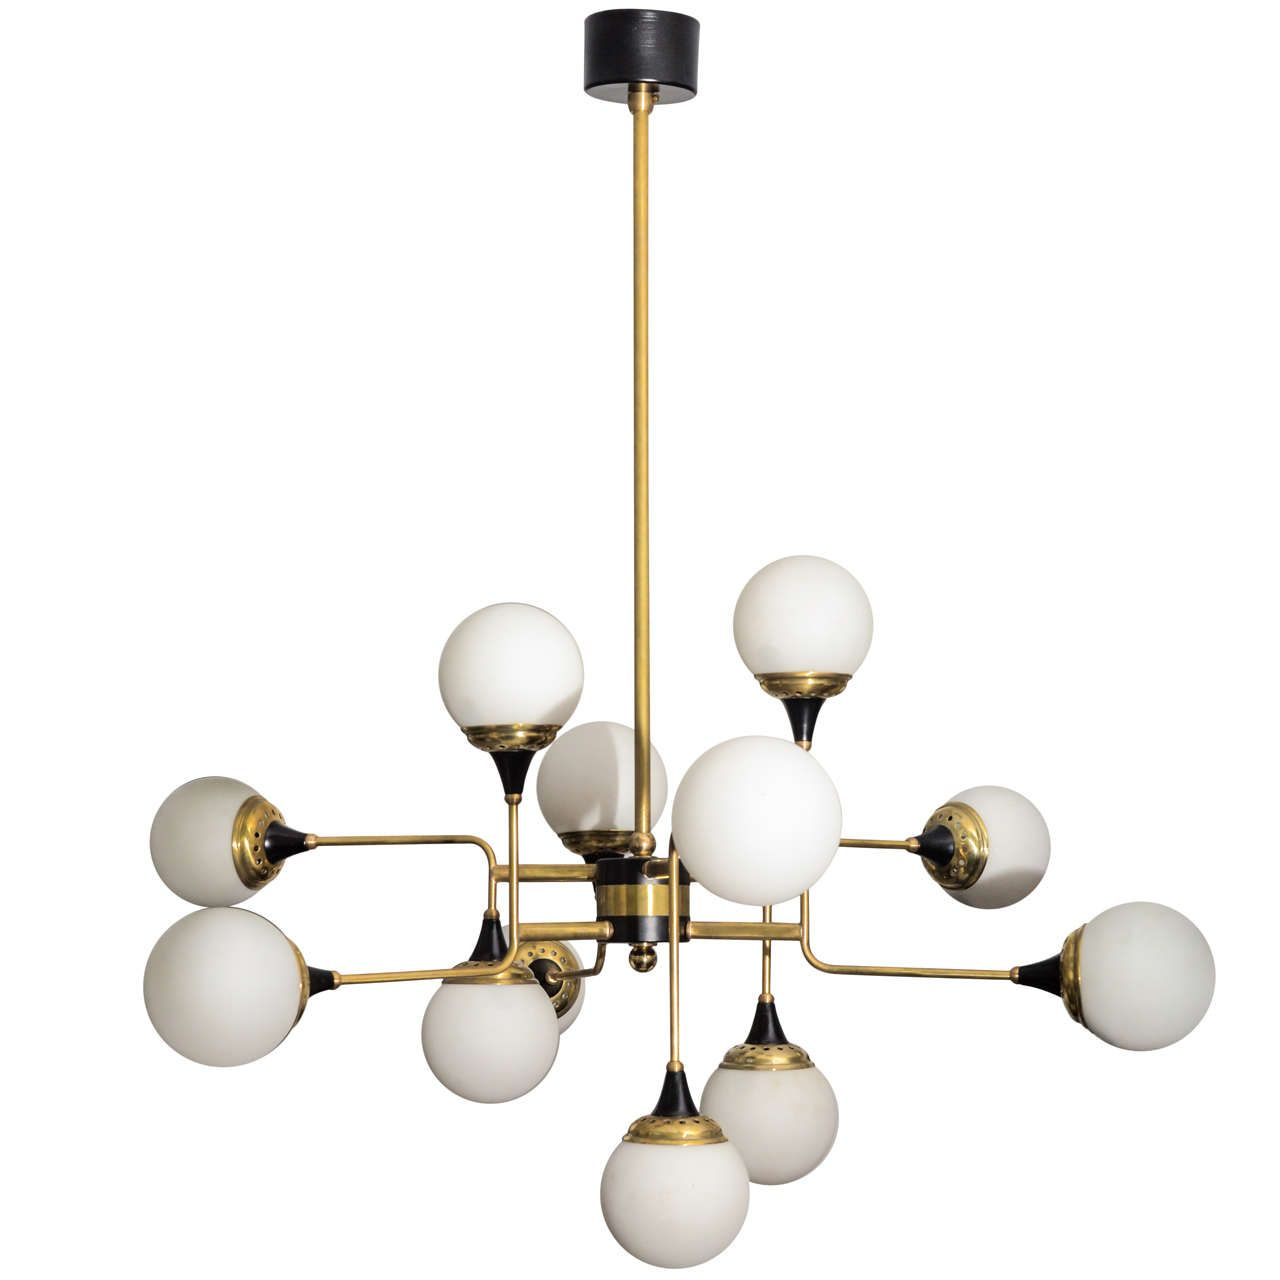 Italian chandelier see more antique and modern chandeliers and